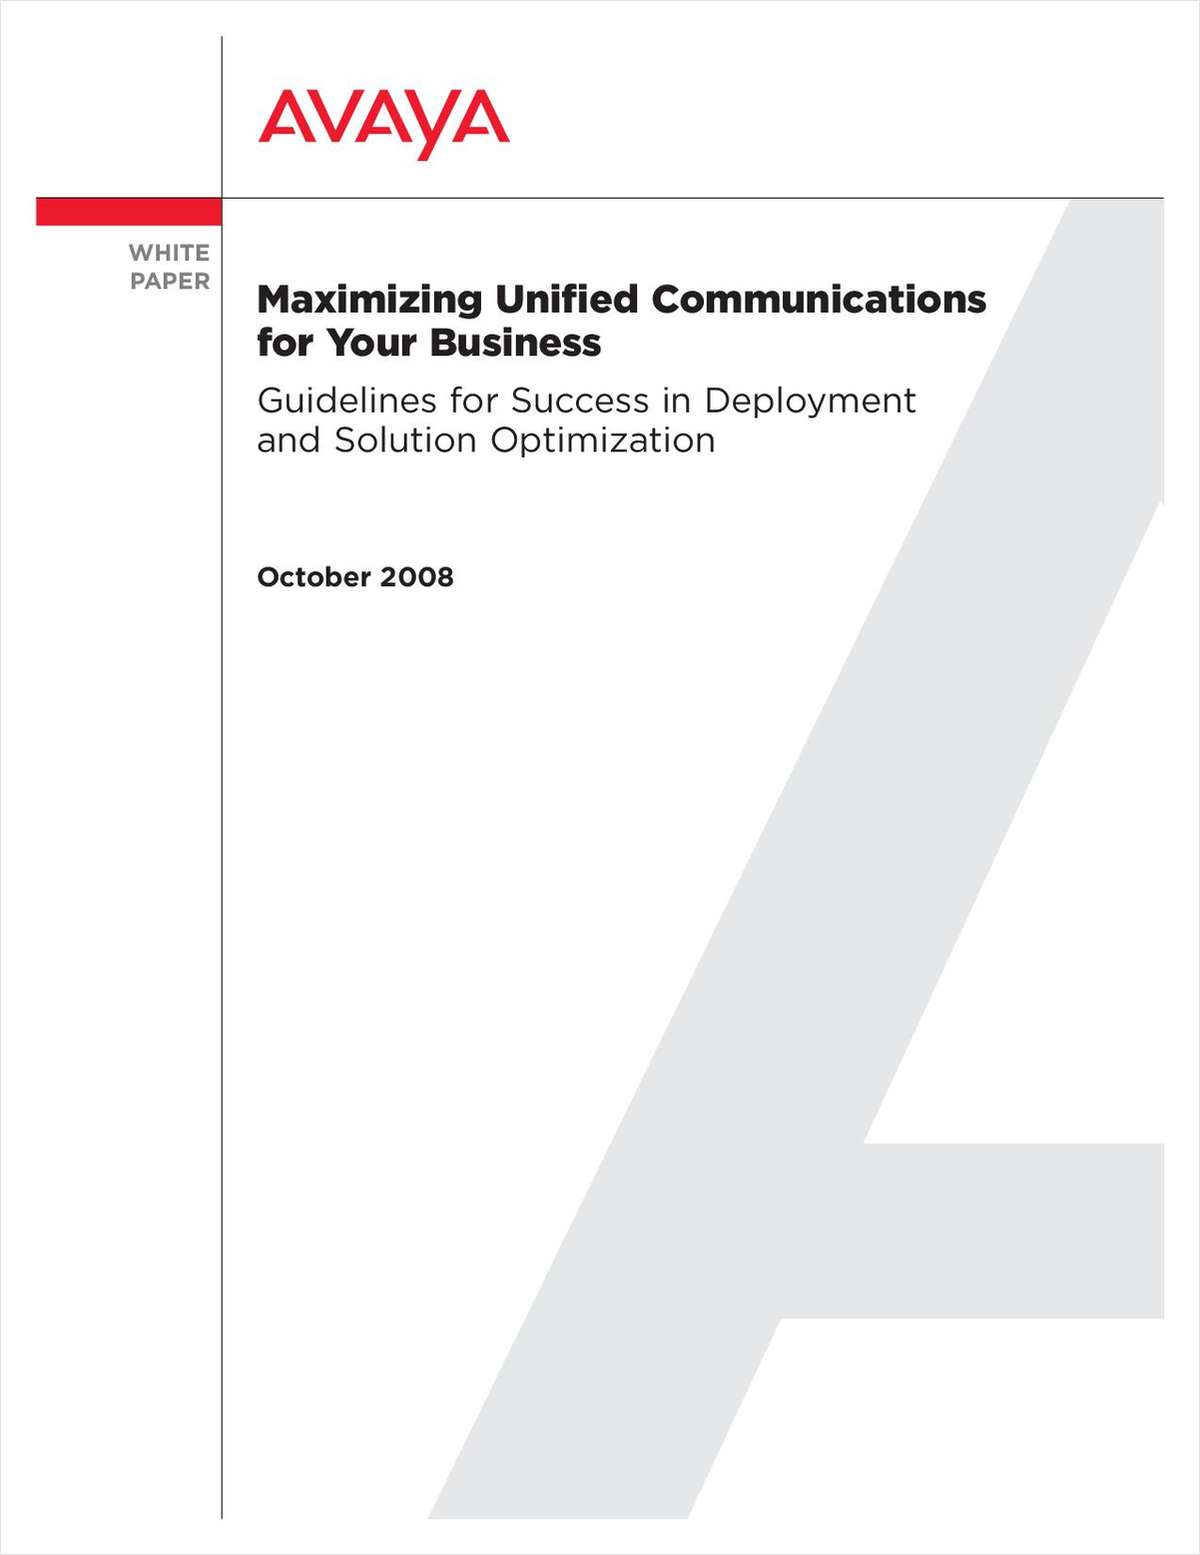 Maximizing Unified Communications for Your Business: Guidelines for Success in Deployment and Solution Optimization